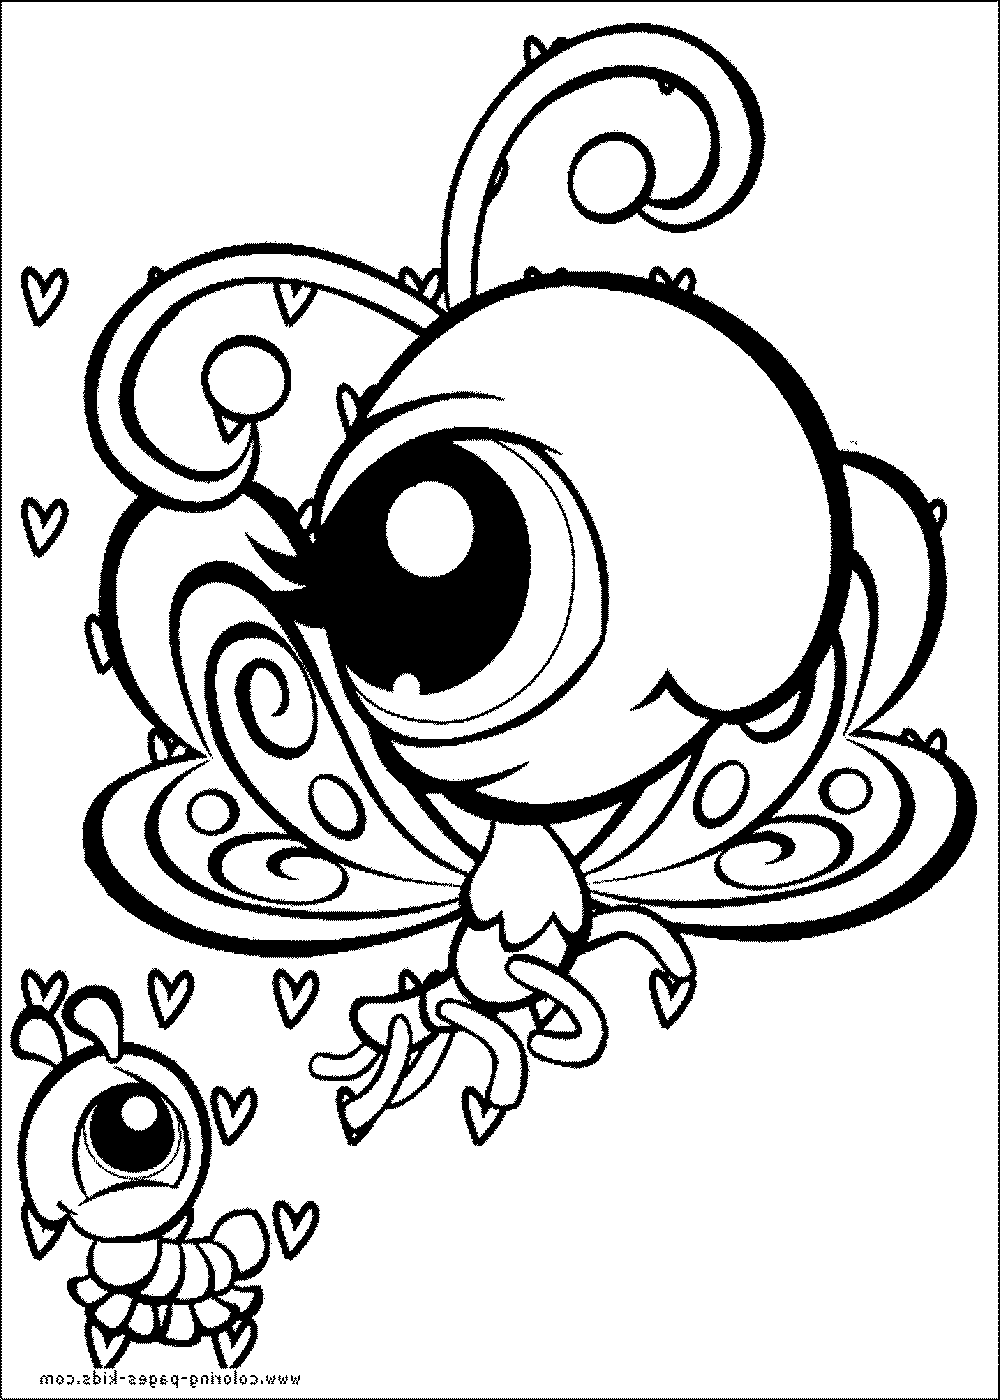 Littlest Pet Shops Coloring Page for My Kids